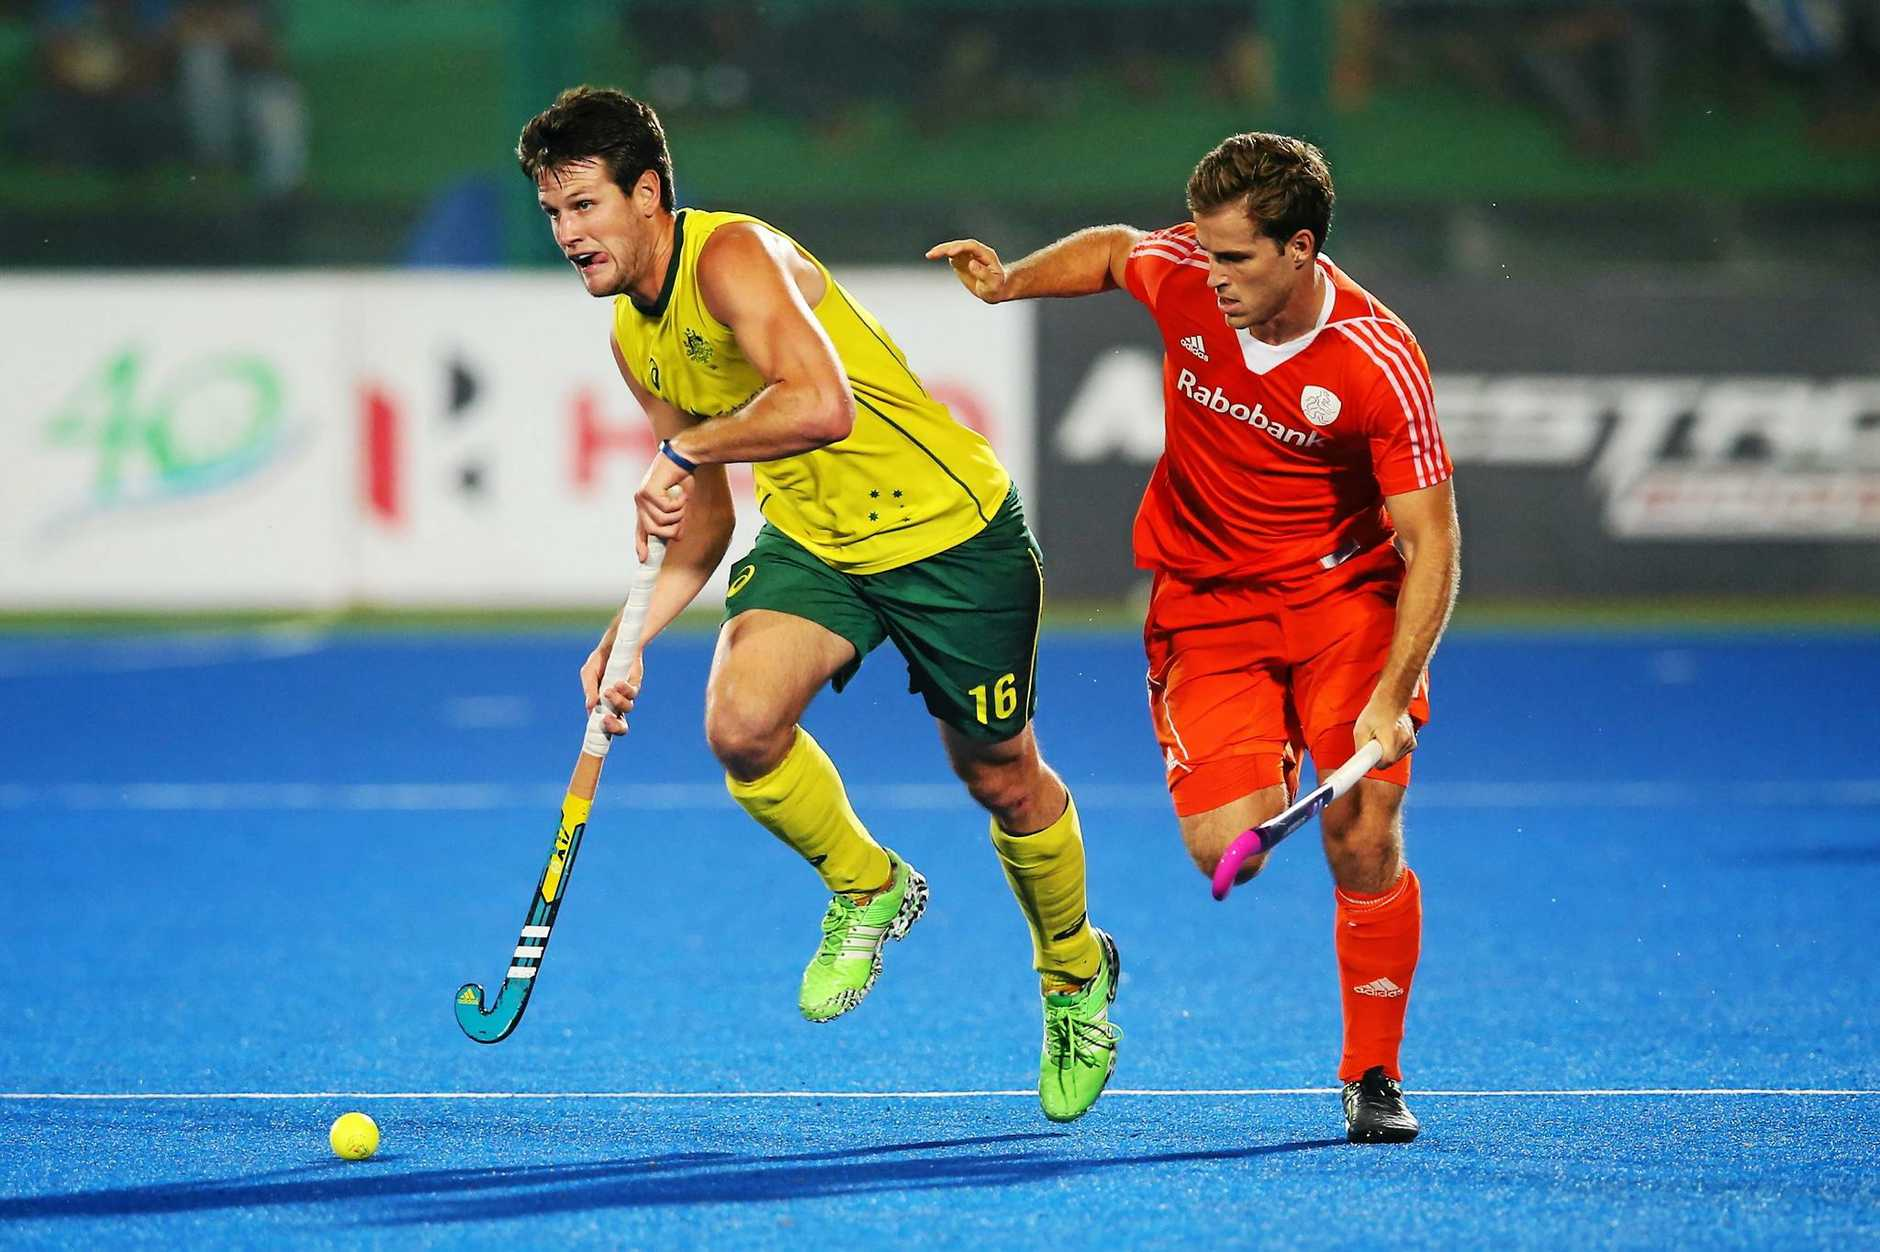 RAIPUR, INDIA - DECEMBER 04:  Matt Gohdes of Australia runs with the ball during the match between Australia and Netherlands on day eight of The Hero Hockey League World Final at the Sardar Vallabh Bhai Patel International Hockey Stadium on December 04, 2015 in Raipur, India. (Photo by Ian MacNicol/Getty images)